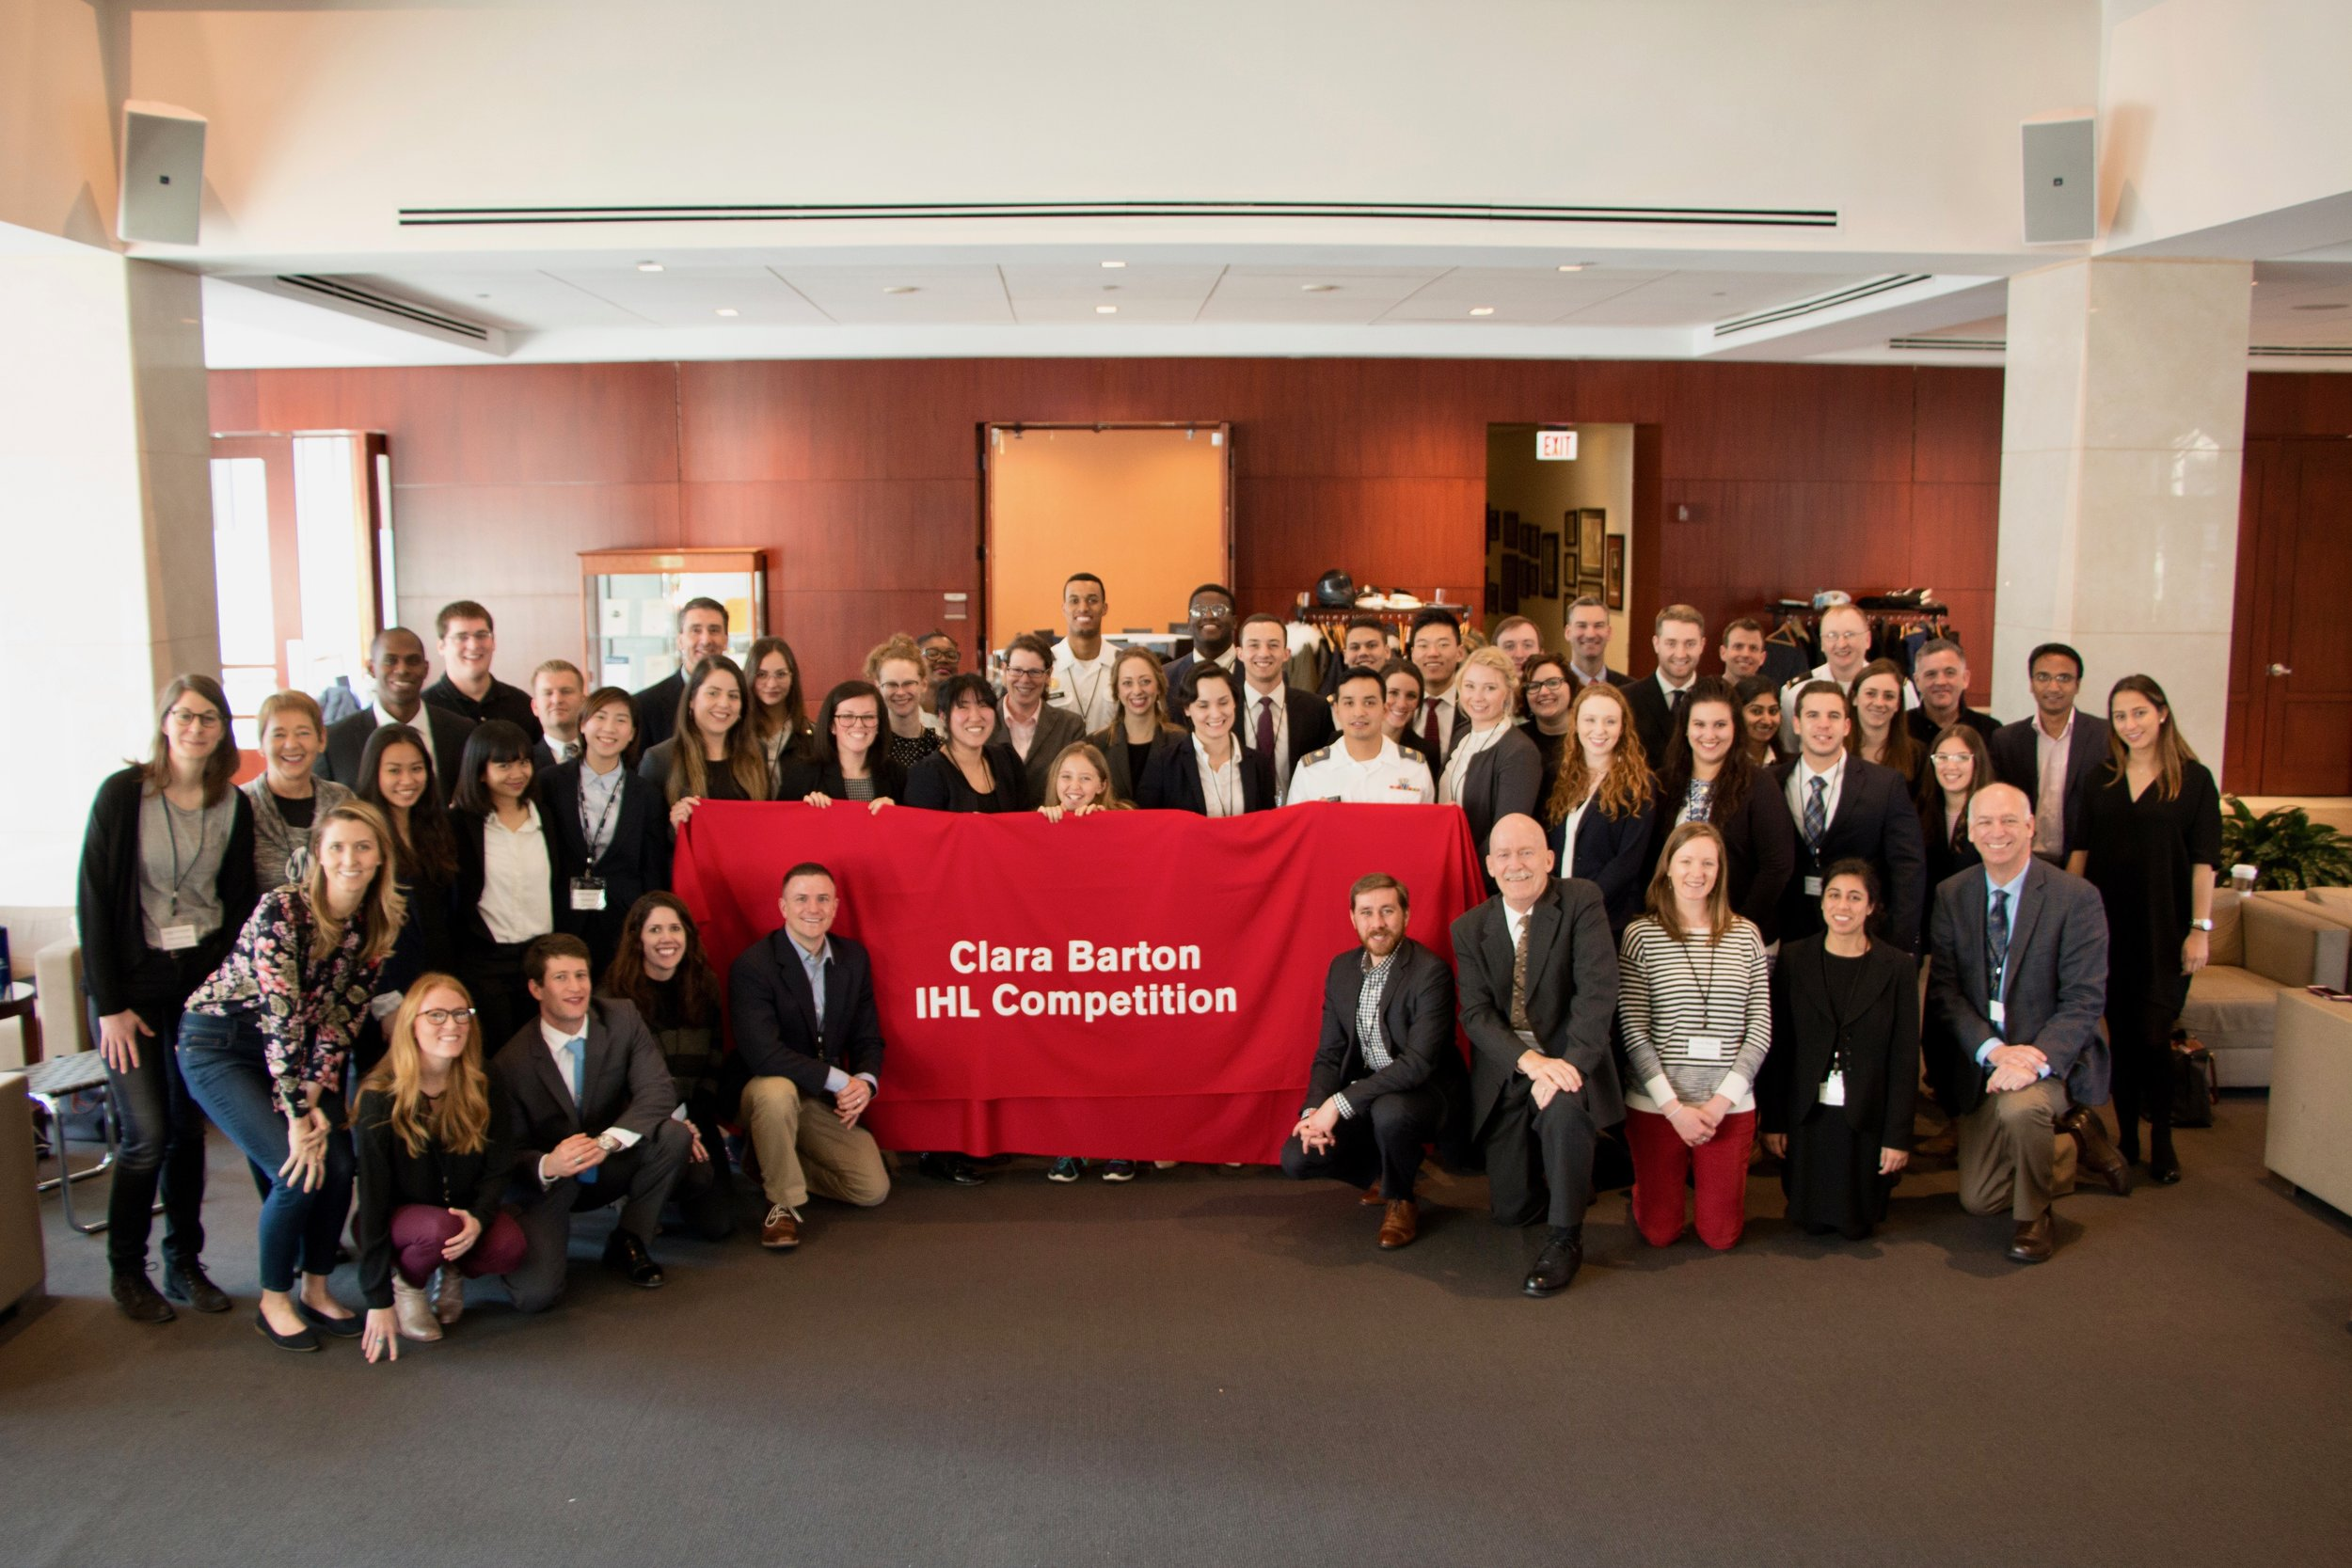 Students, judges, and Clara Barton Committee members. Joe Gibson/American Red Cross